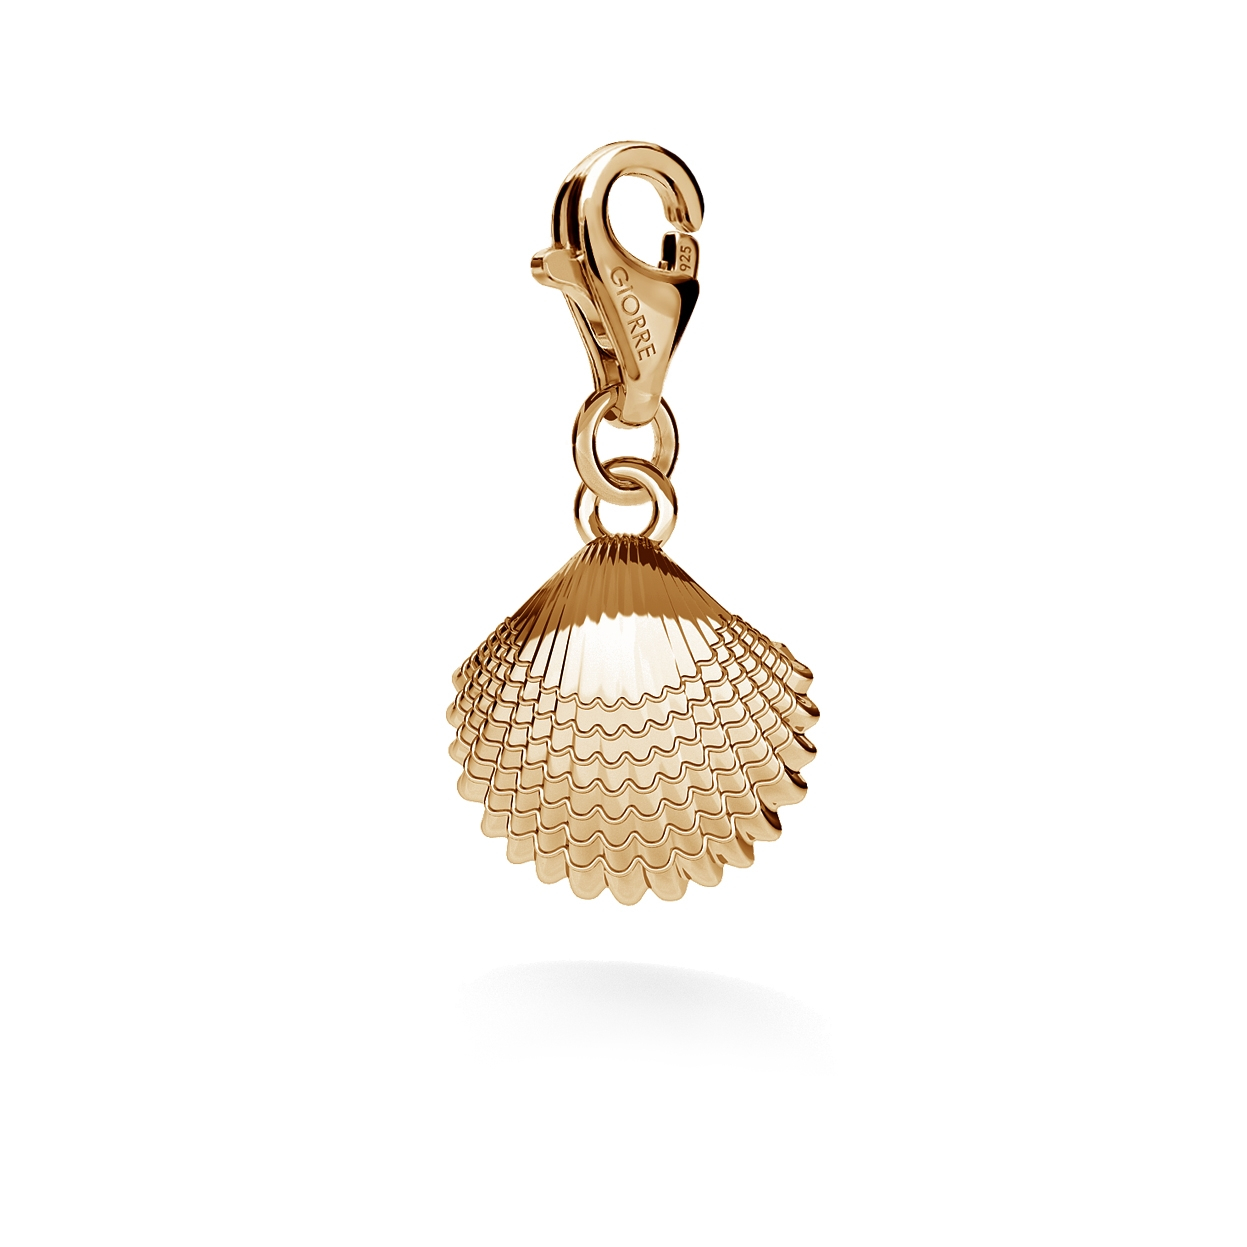 CHARM 88, SMALL SEA SHELL, SILVER 925,  RHODIUM OR GOLD PLATED